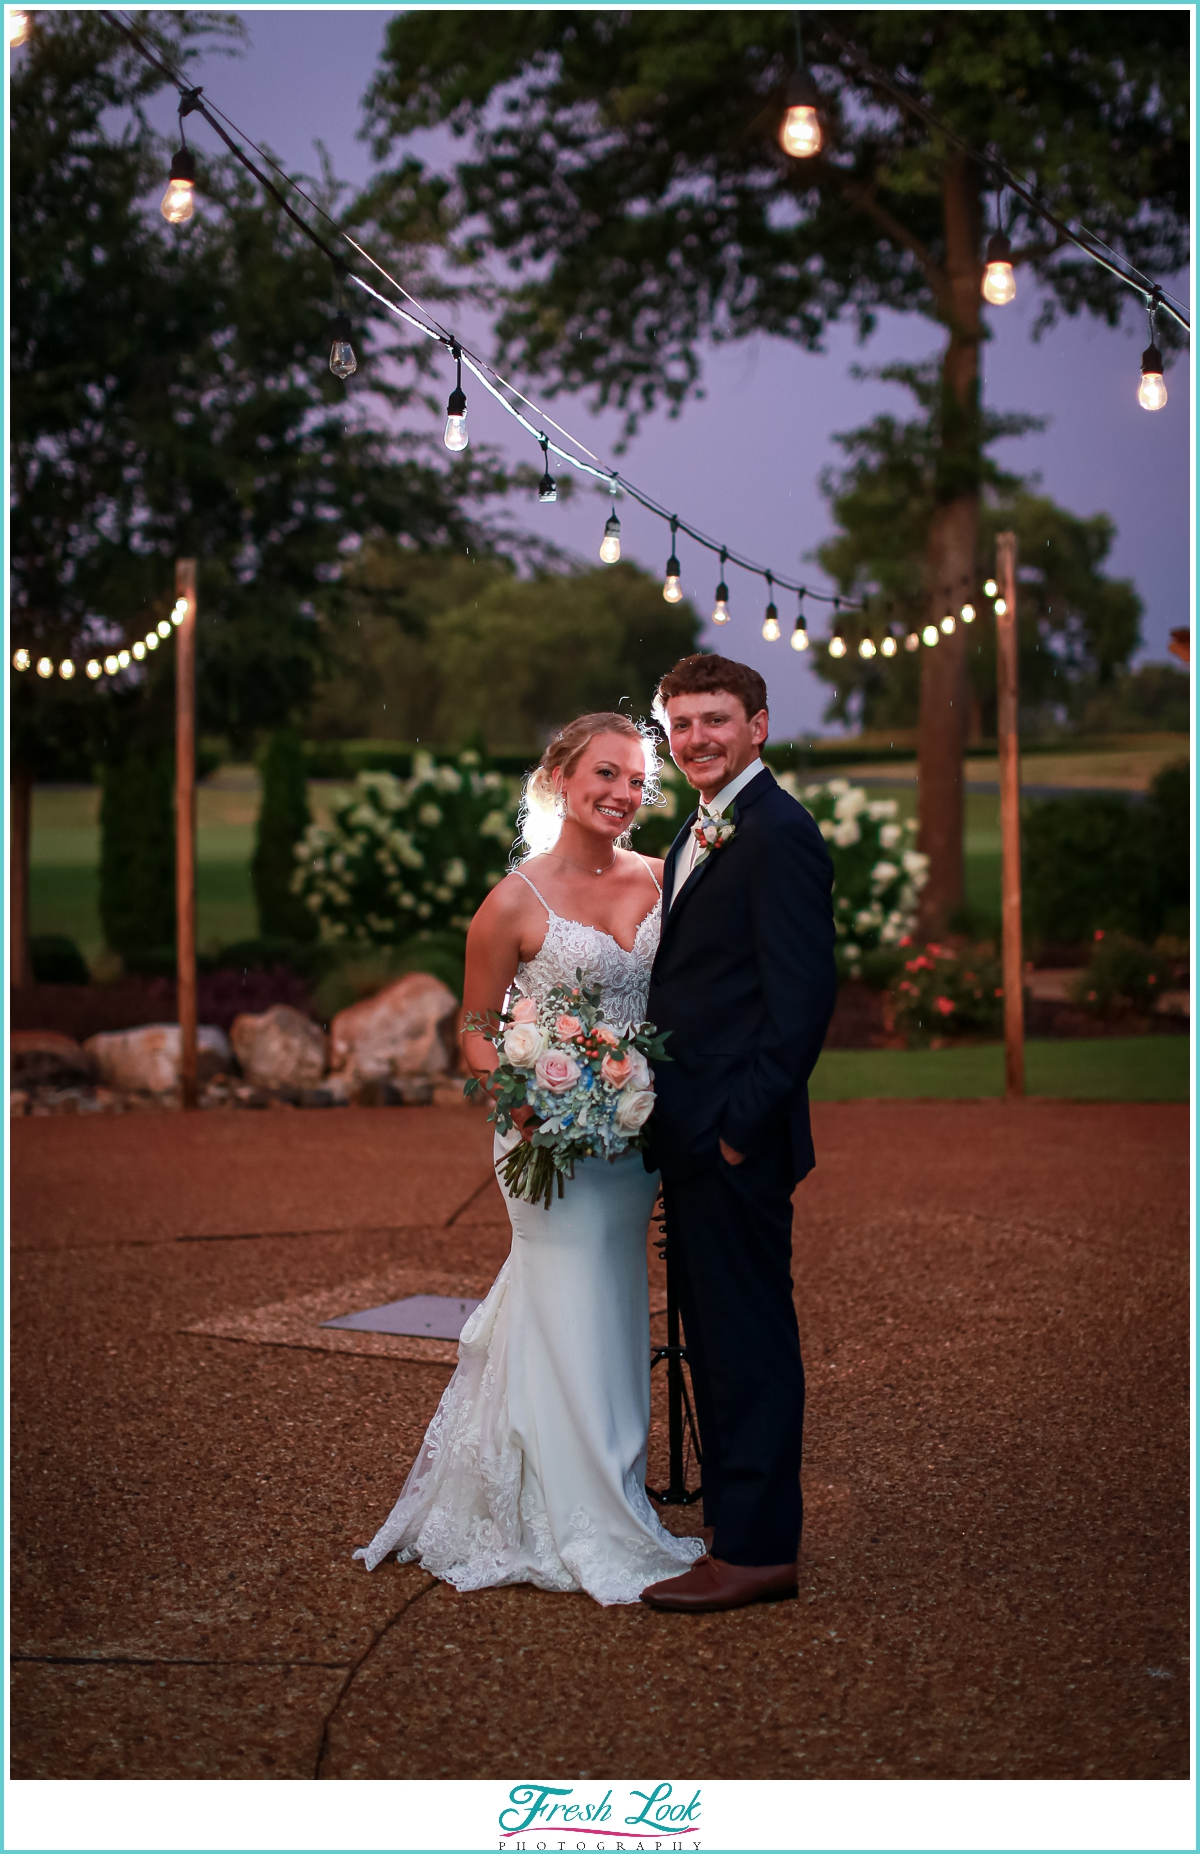 Bride and groom portraits with string lights